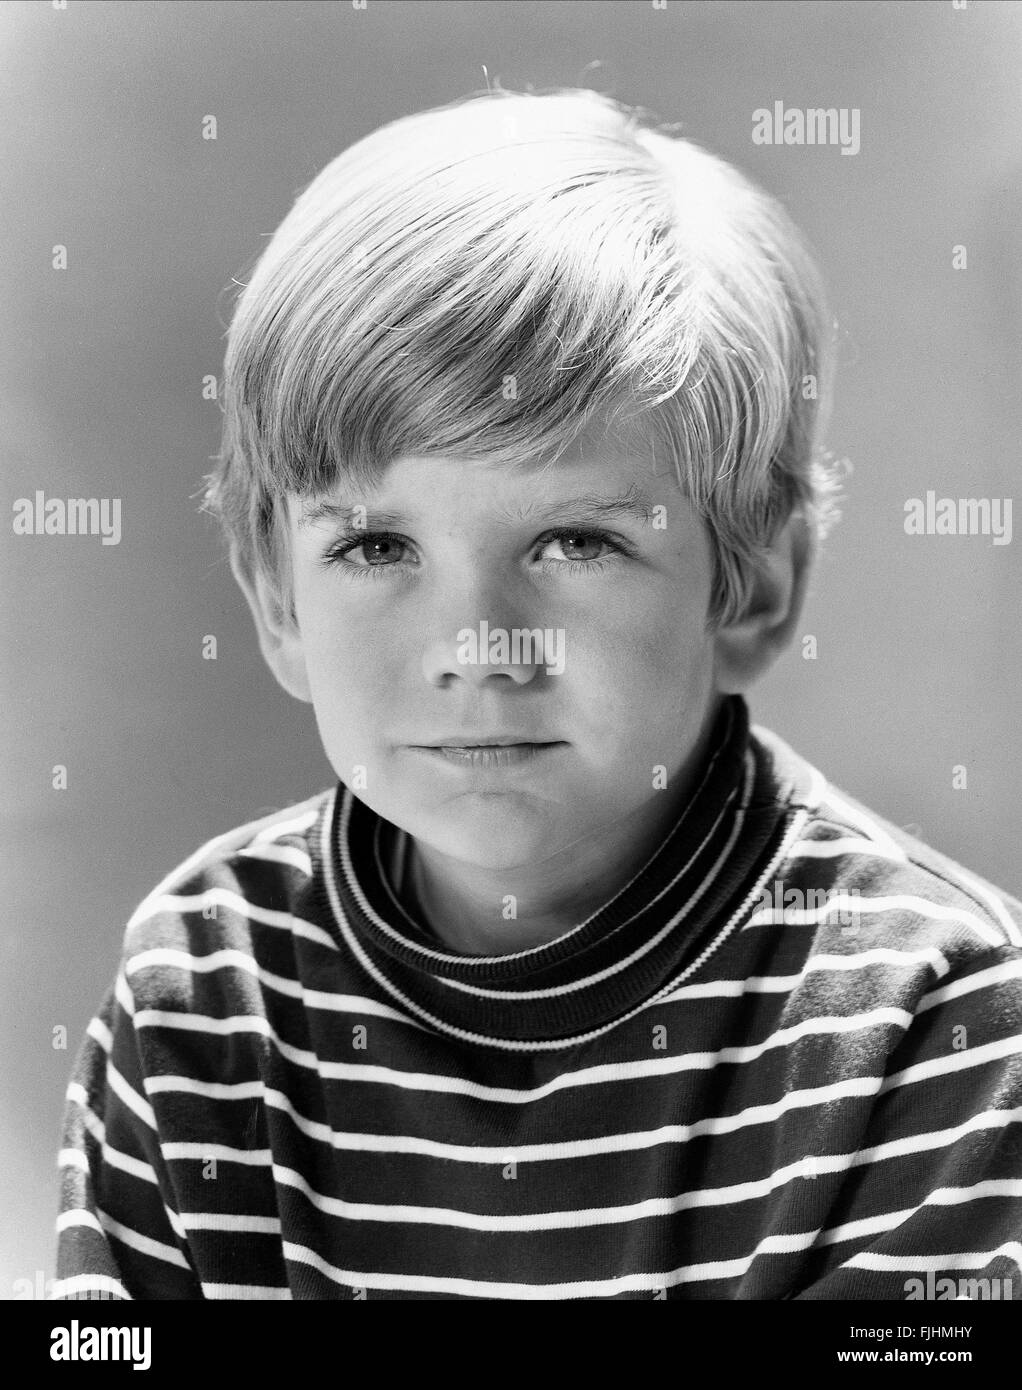 brian forster the partridge family 1970 stock photo